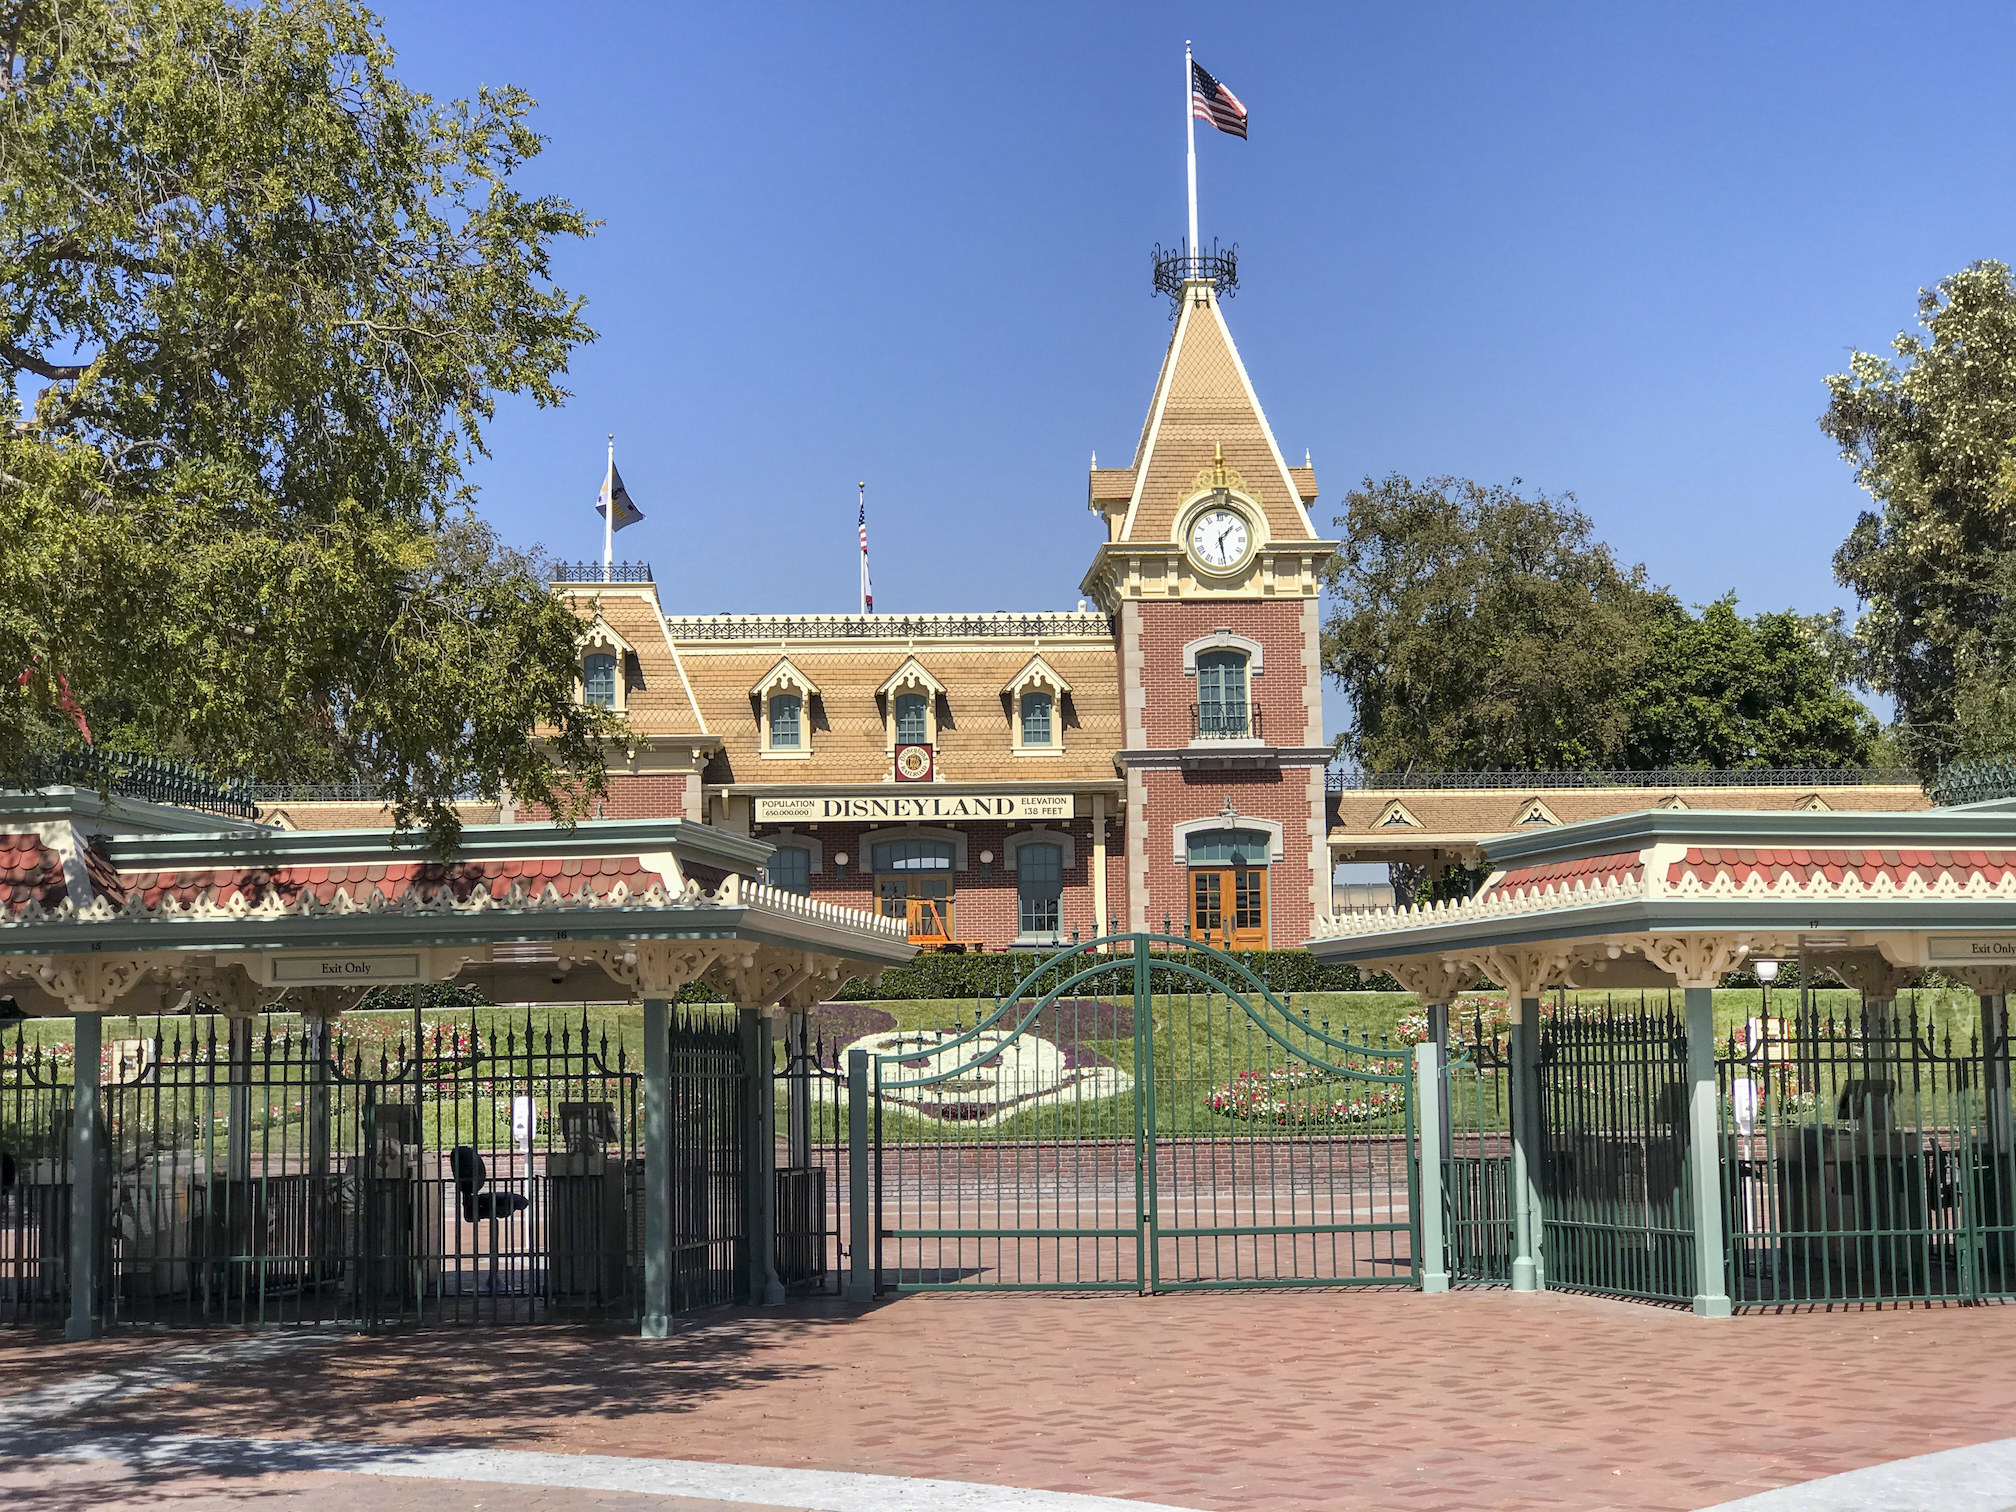 The front of Disneyland's gates closed with the train station in the background